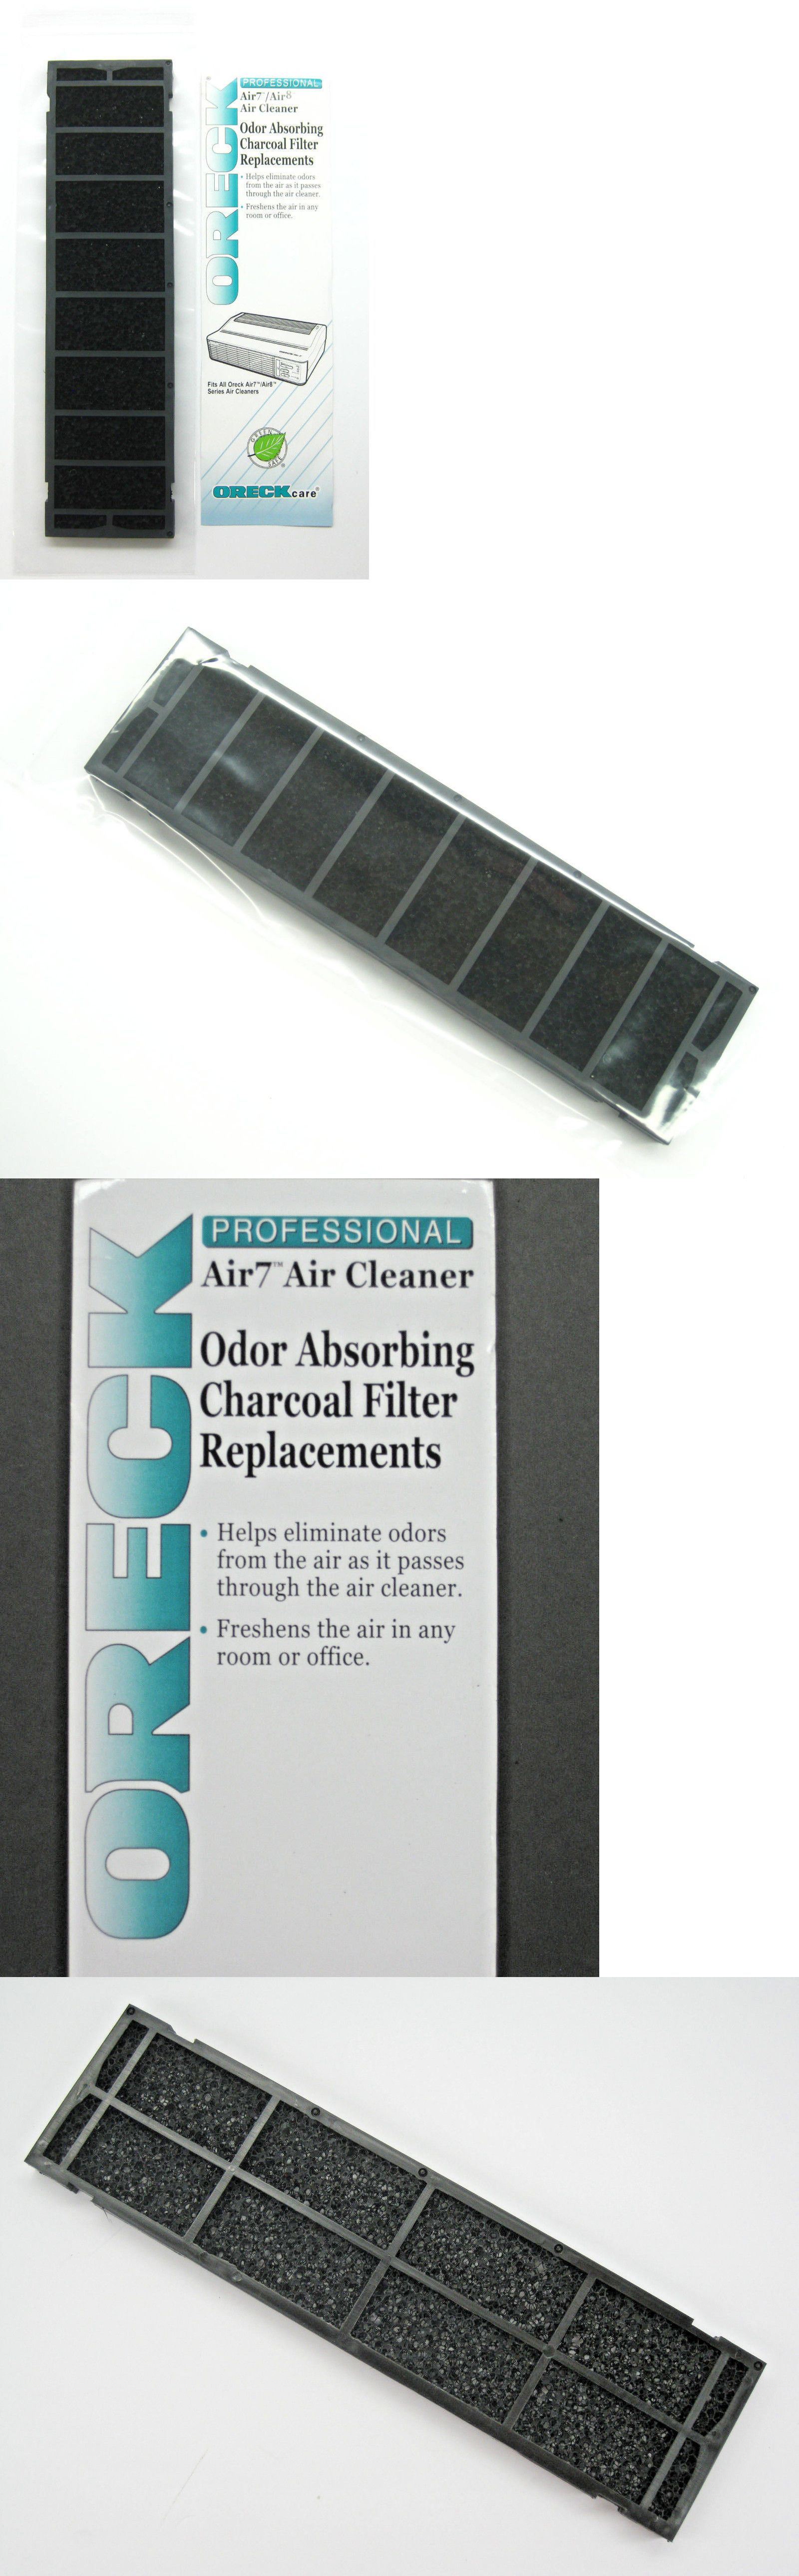 Pin on Air Purifiers 43510